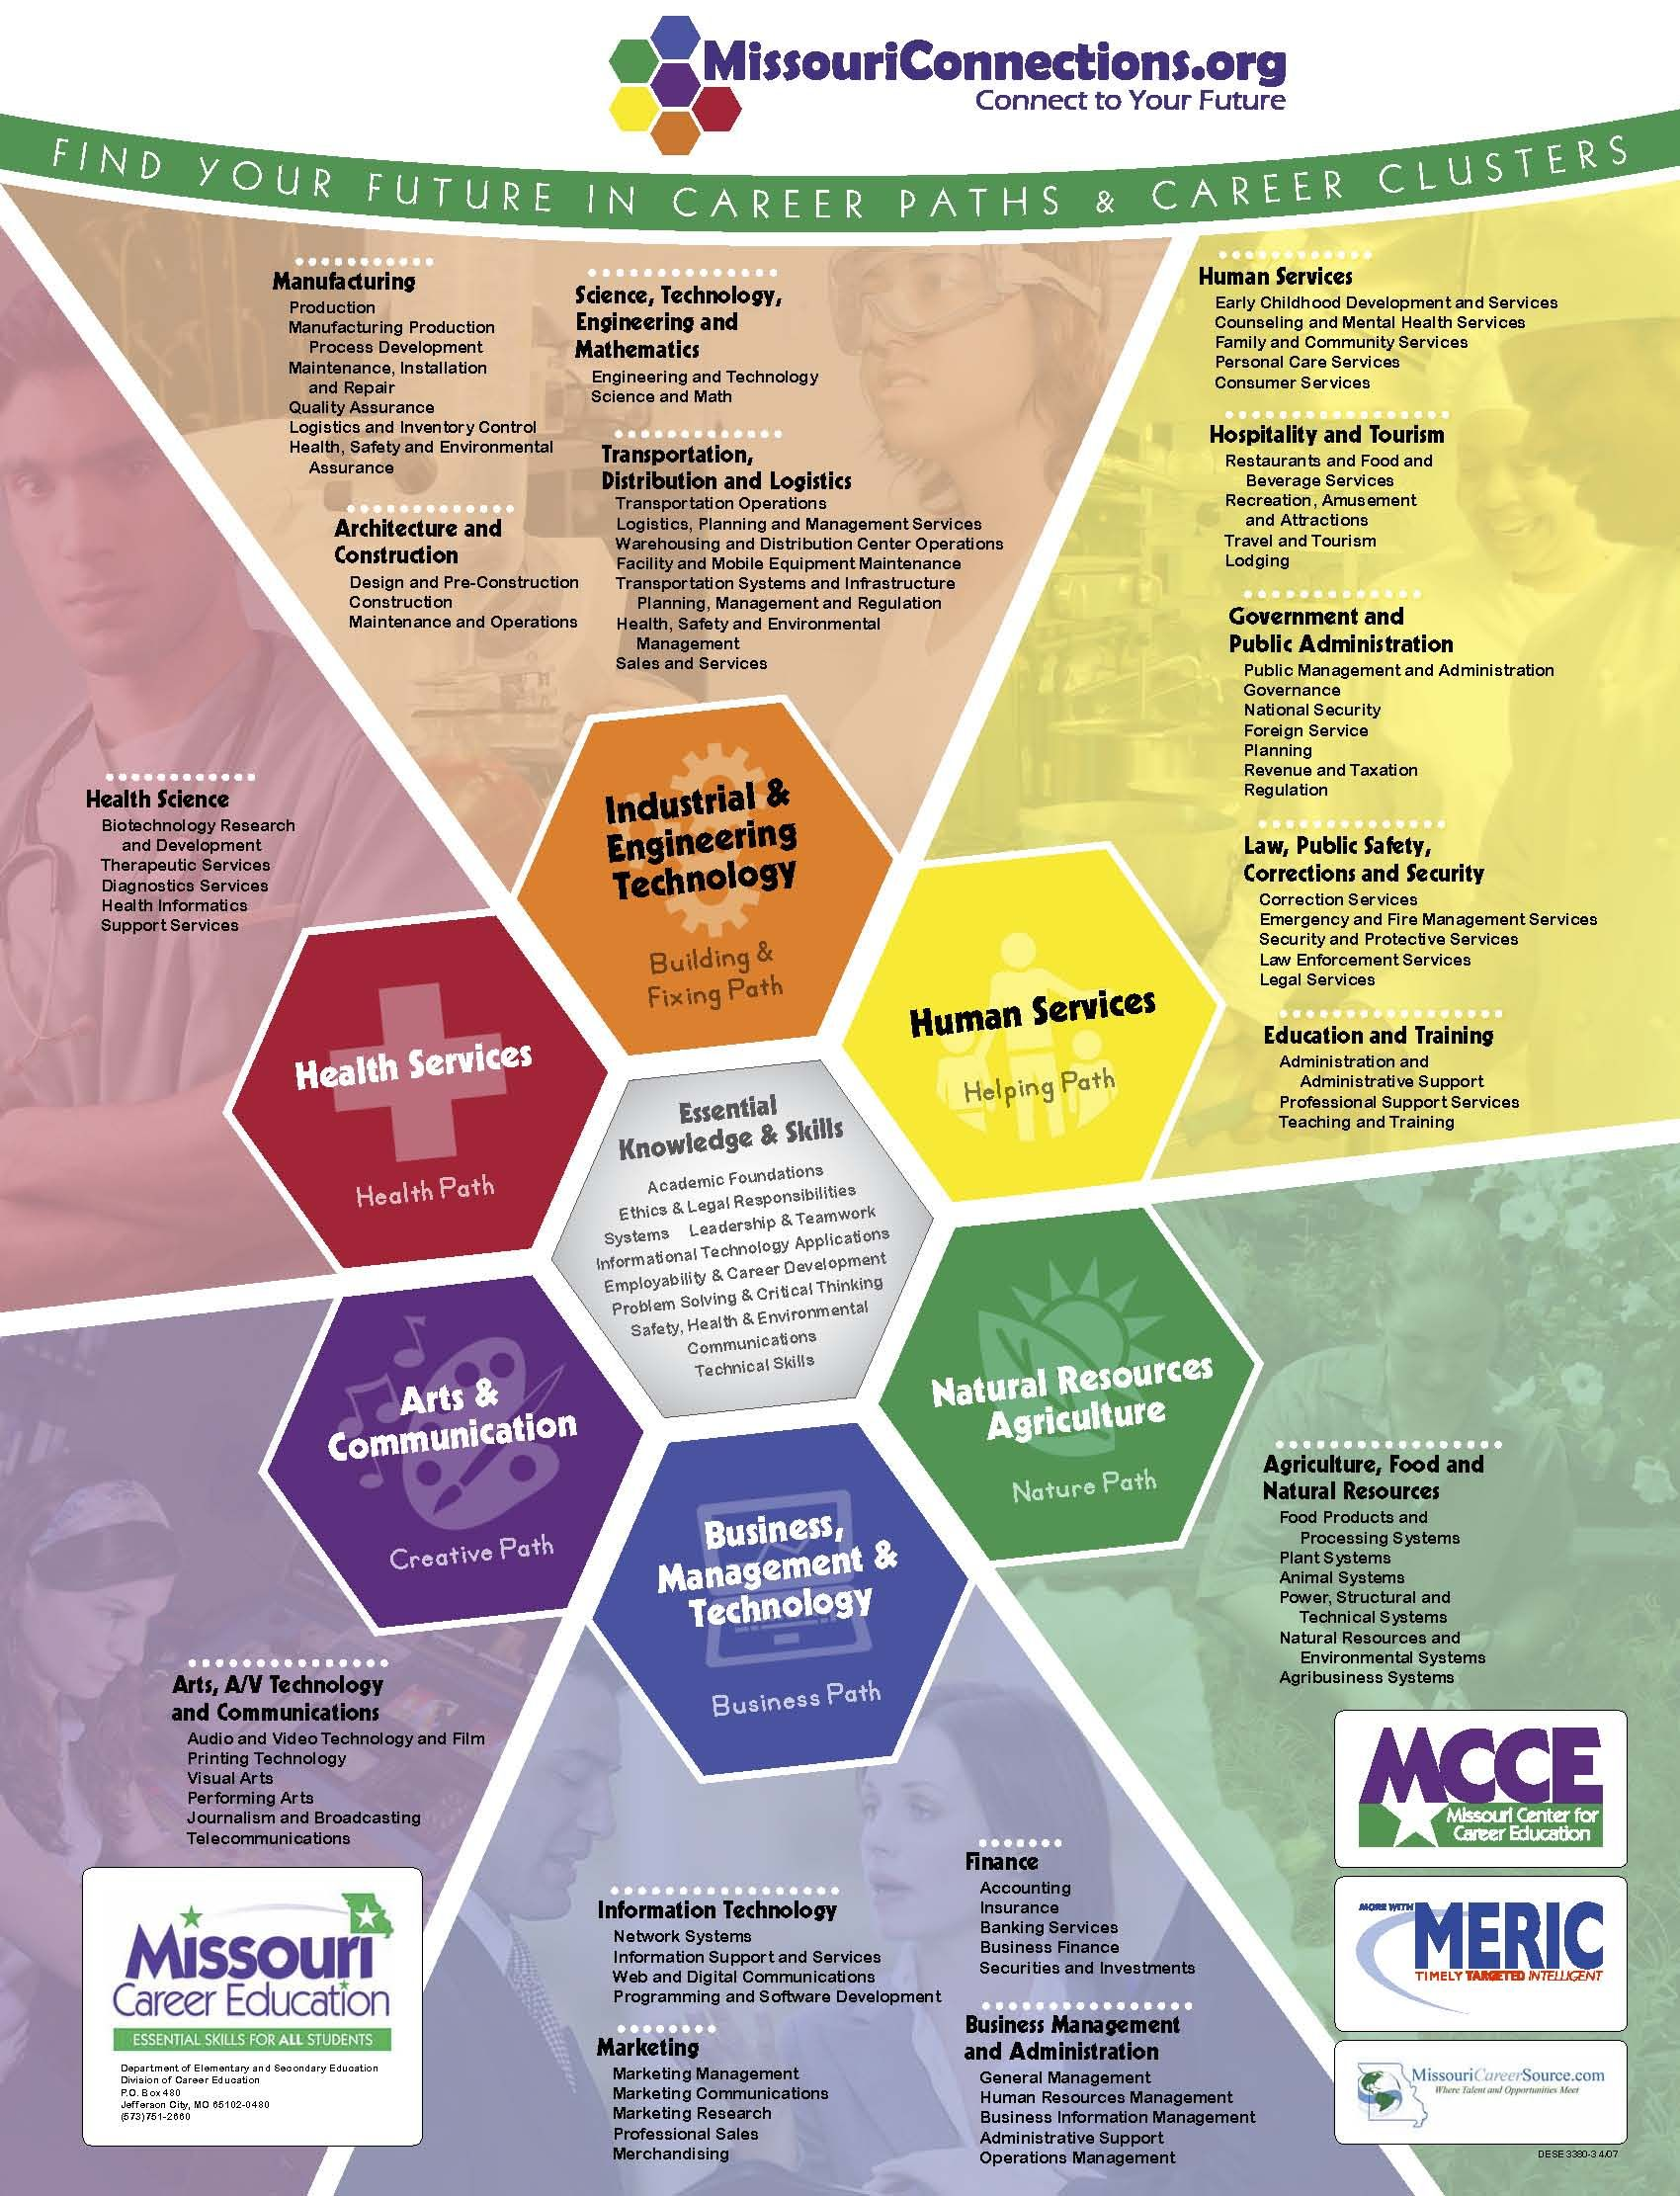 Poster Of The Career Clusters From Missouri Connections